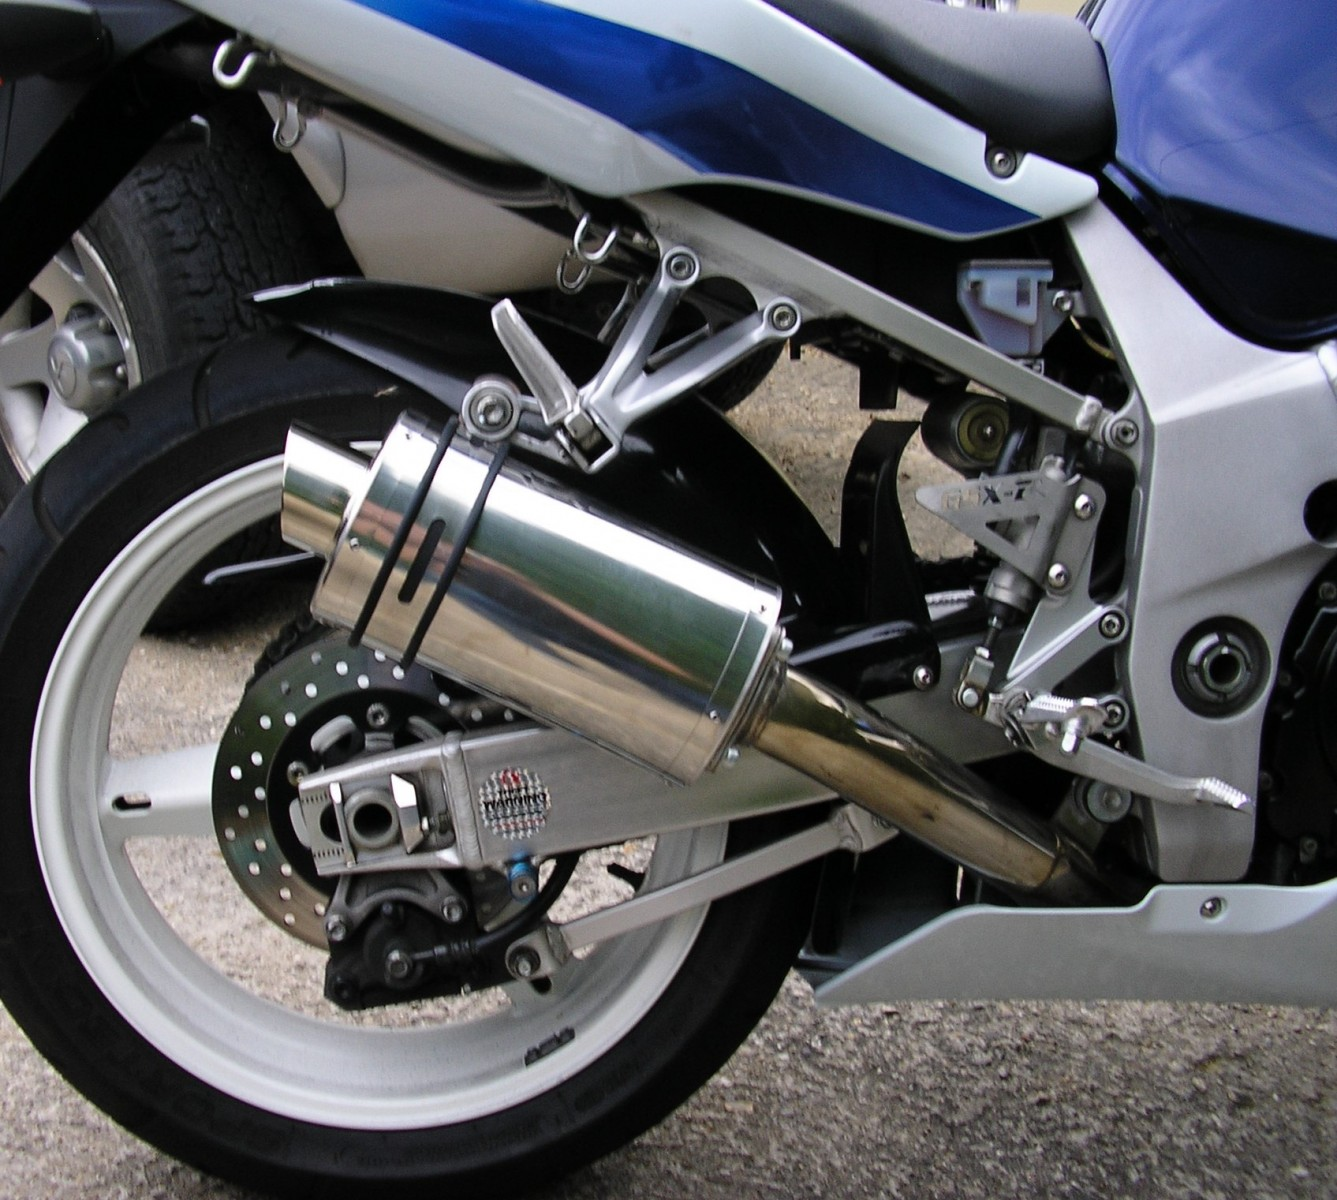 """Suzuki GSXR 600 750 K1-K5 2001-2005<p>A16 Stubby Stainless Exhaust with Slashcut Outlet</p><br><a href=""""https://a16roadnracesupplies.co.uk/product/a16-suzuki-exhausts/"""">Buy now!</a>"""